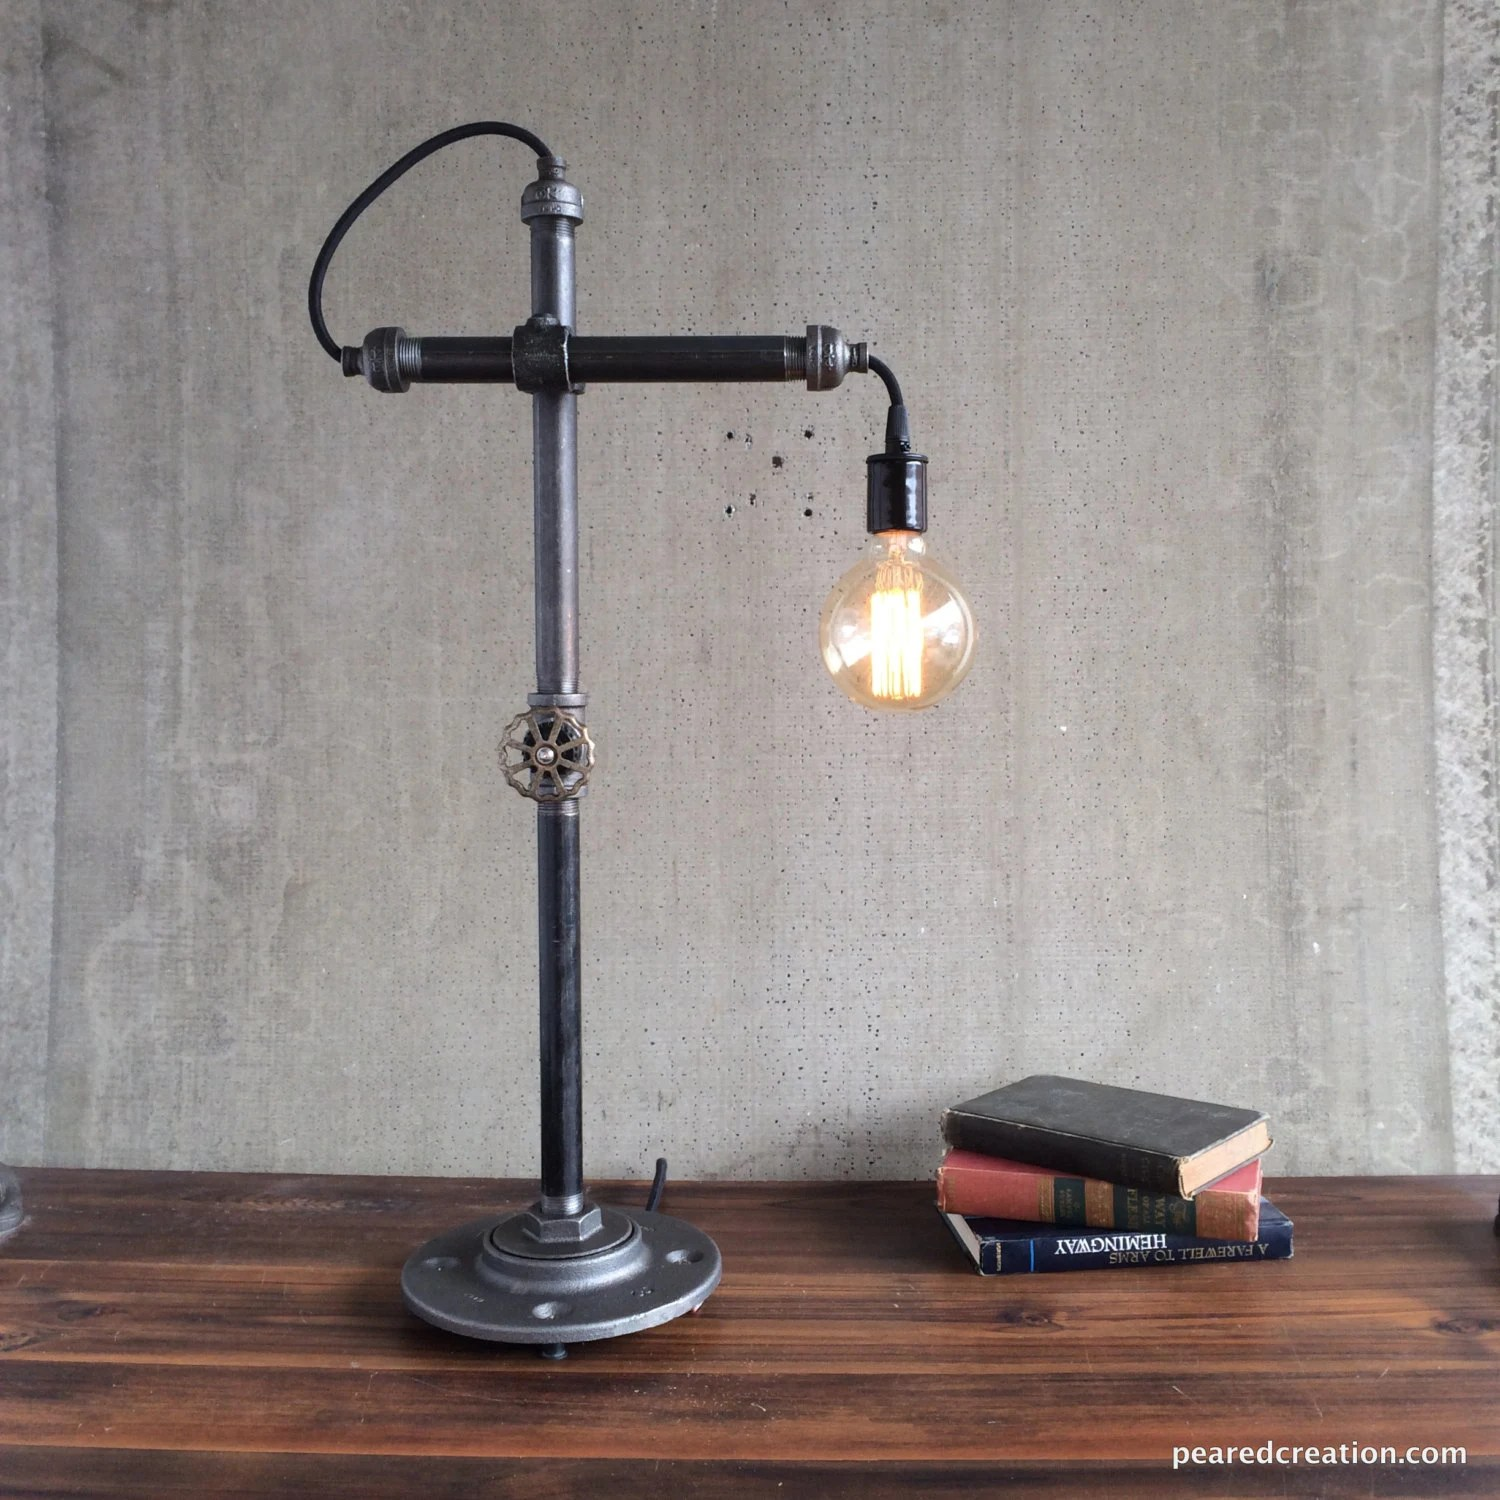 Industrial Lamps For Sale Table Lamp Industrial Lighting Task Lamp Office Lamp